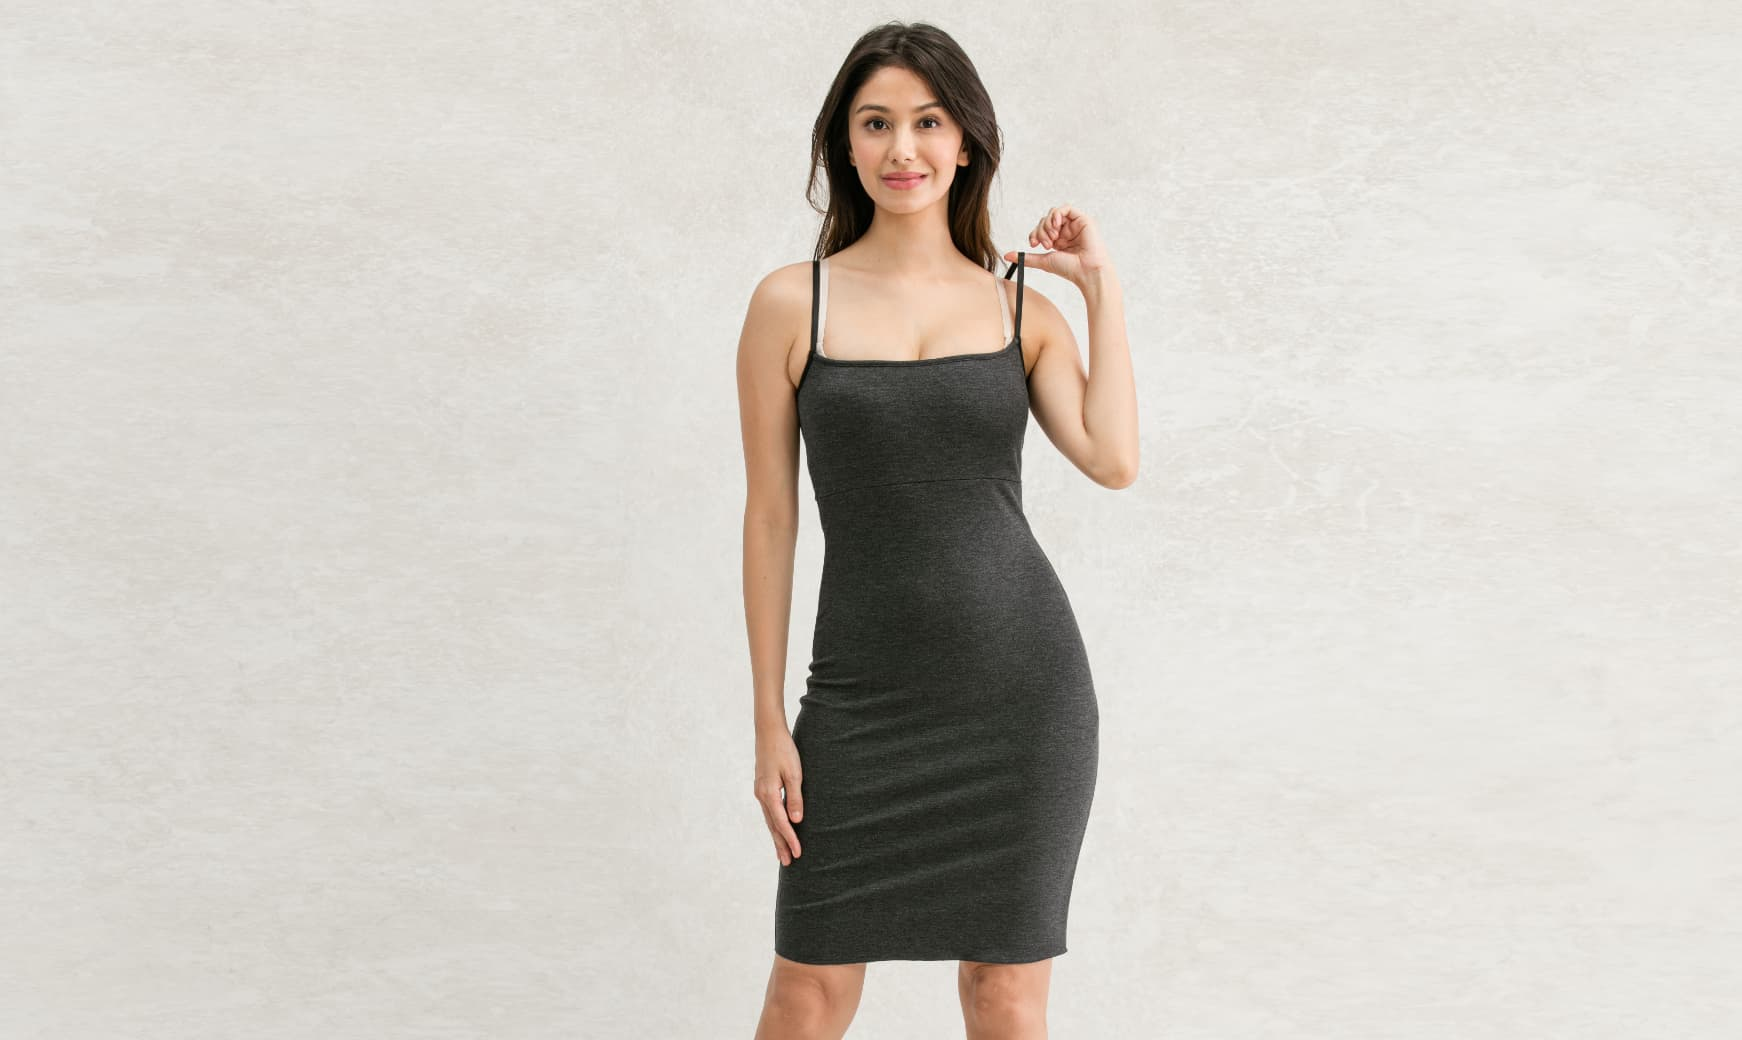 07_Charcoal_Gray_Body_Contour_Underdress.jpg